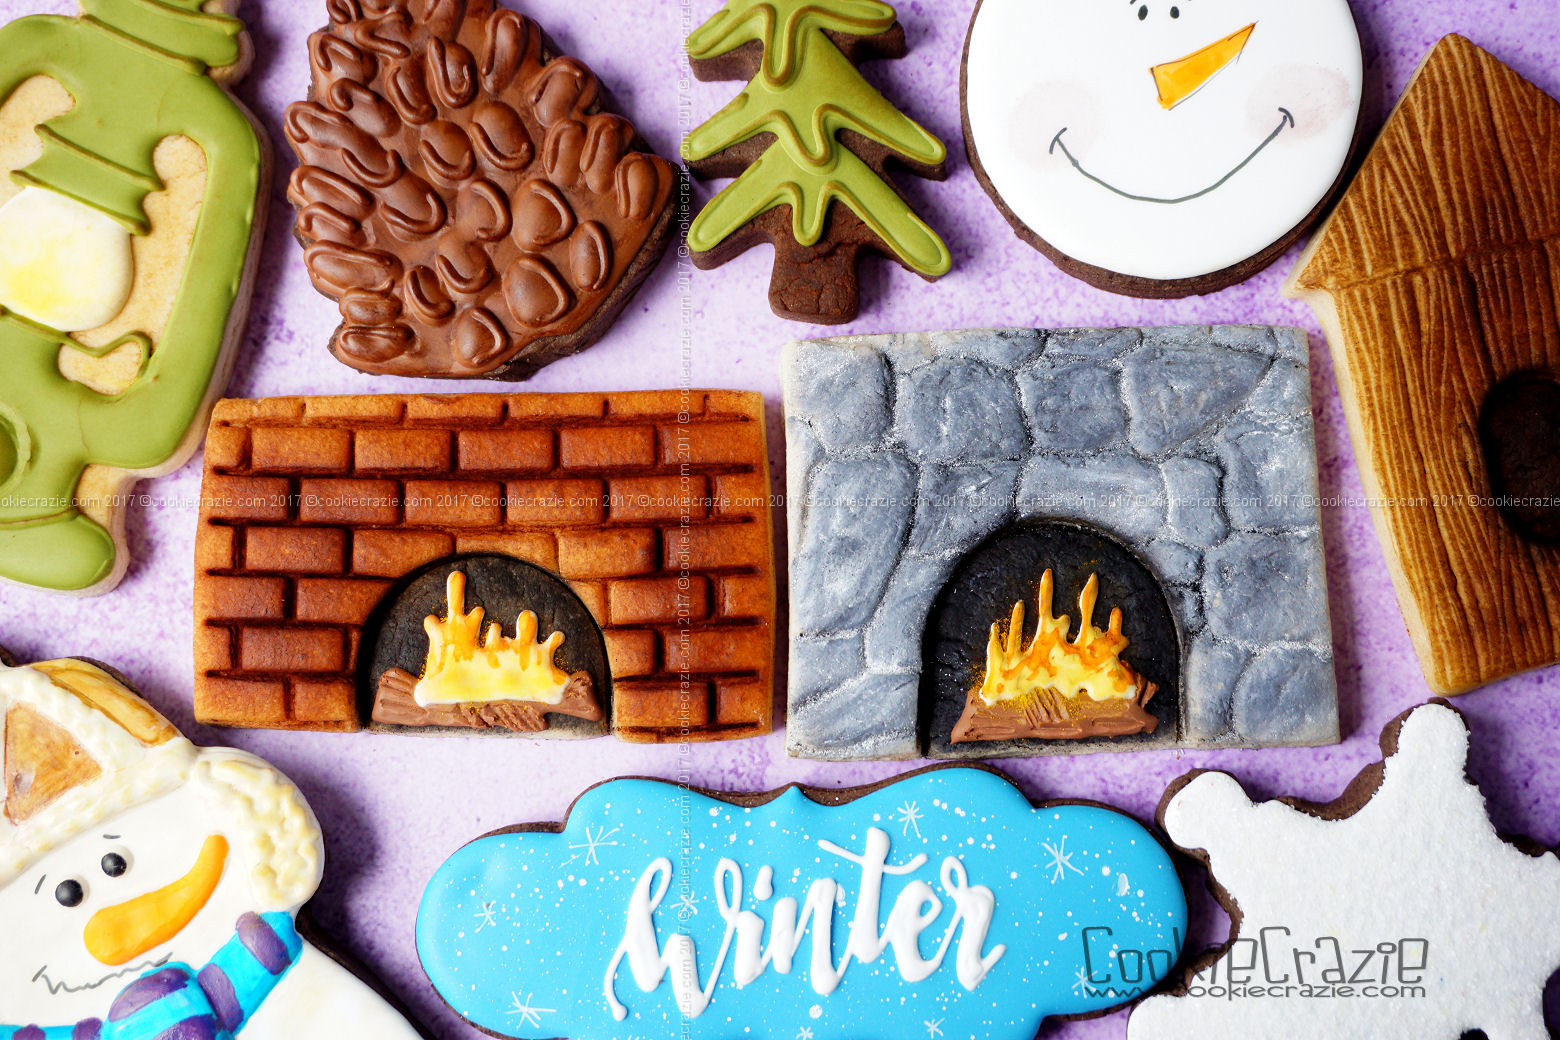 Fireplace Decorated Winter Sugar Cookies YouTube video  HERE